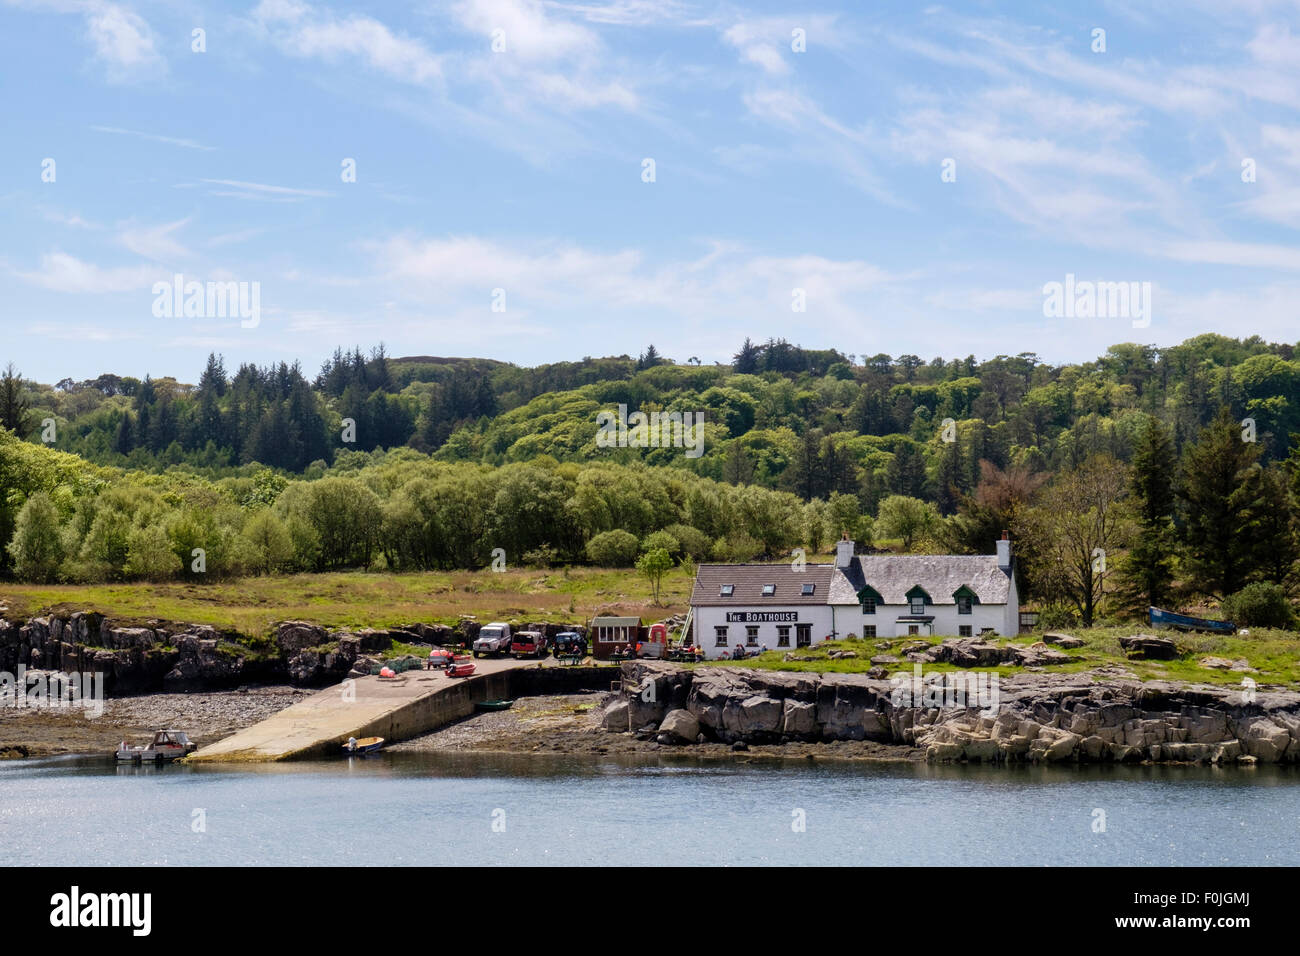 Looking across Ulva Sound to The Boathouse seafood restaurant by Ulva ferry jetty. Isle of Mull, Inner Hebrides, - Stock Image